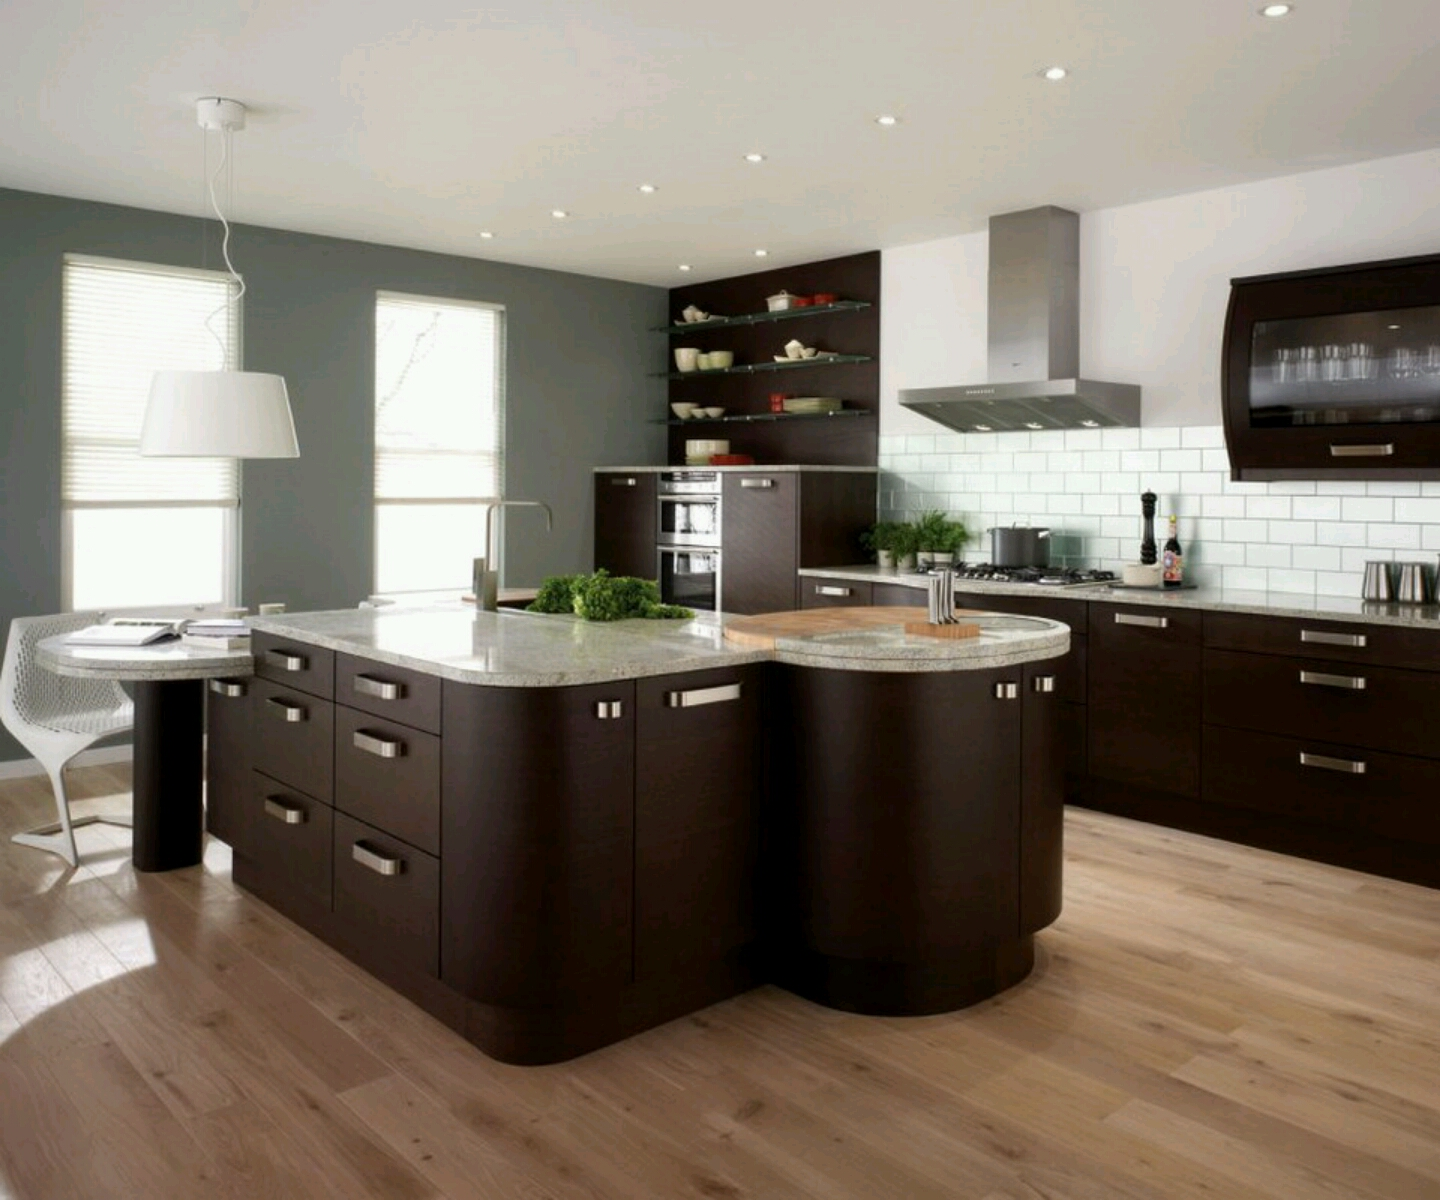 American Kitchen Design Gallery